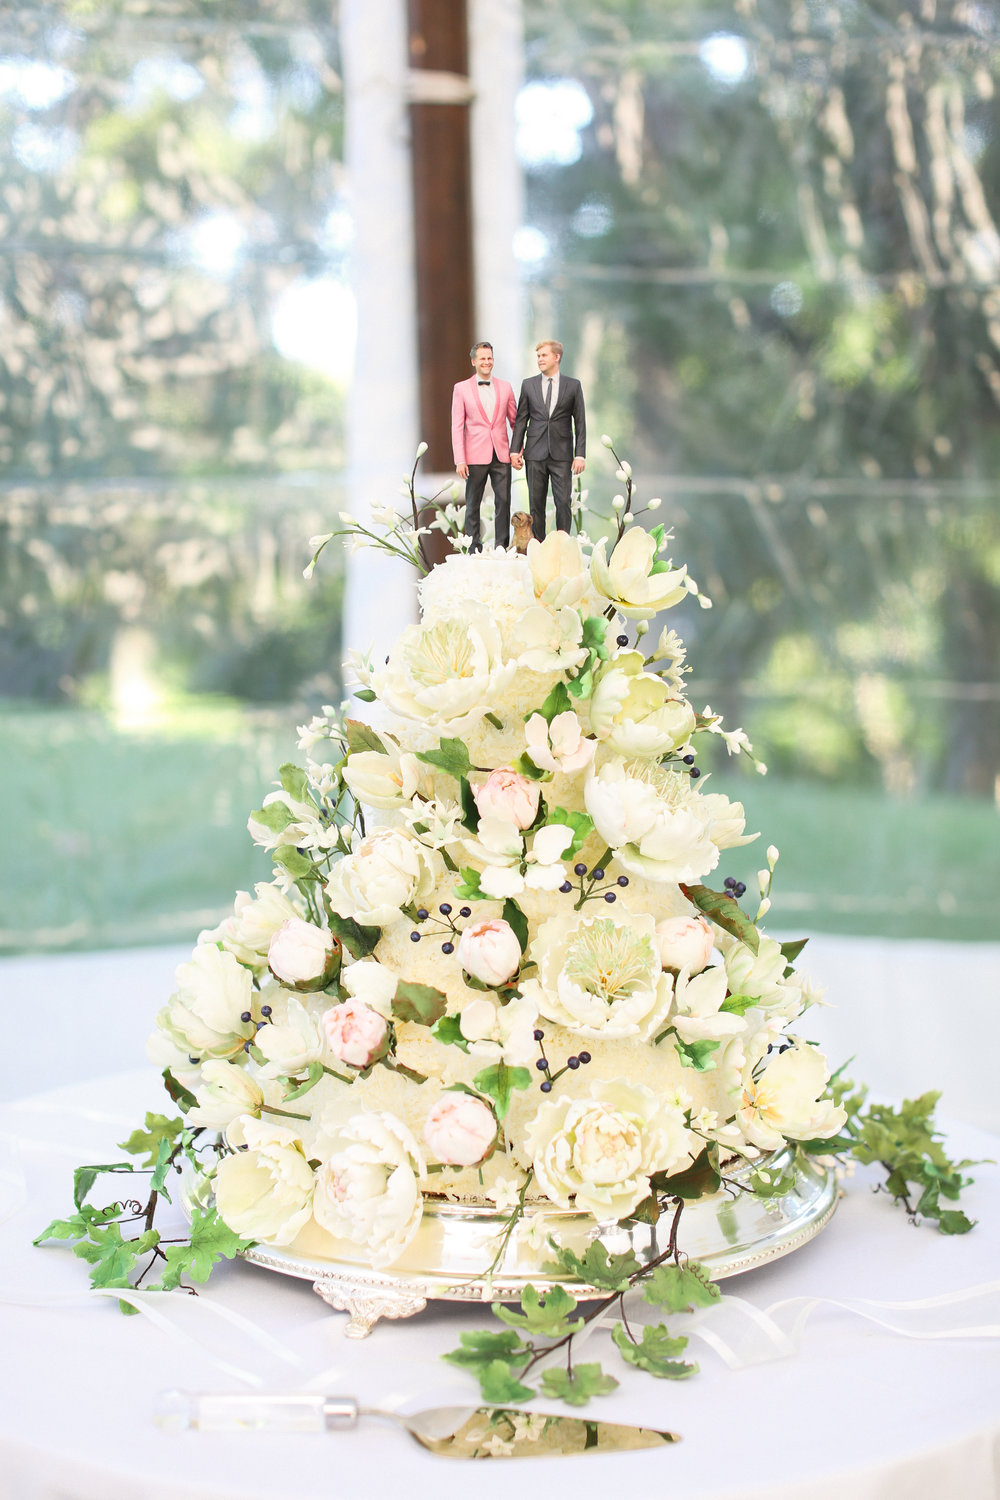 Hall + Michael Wedding Cake